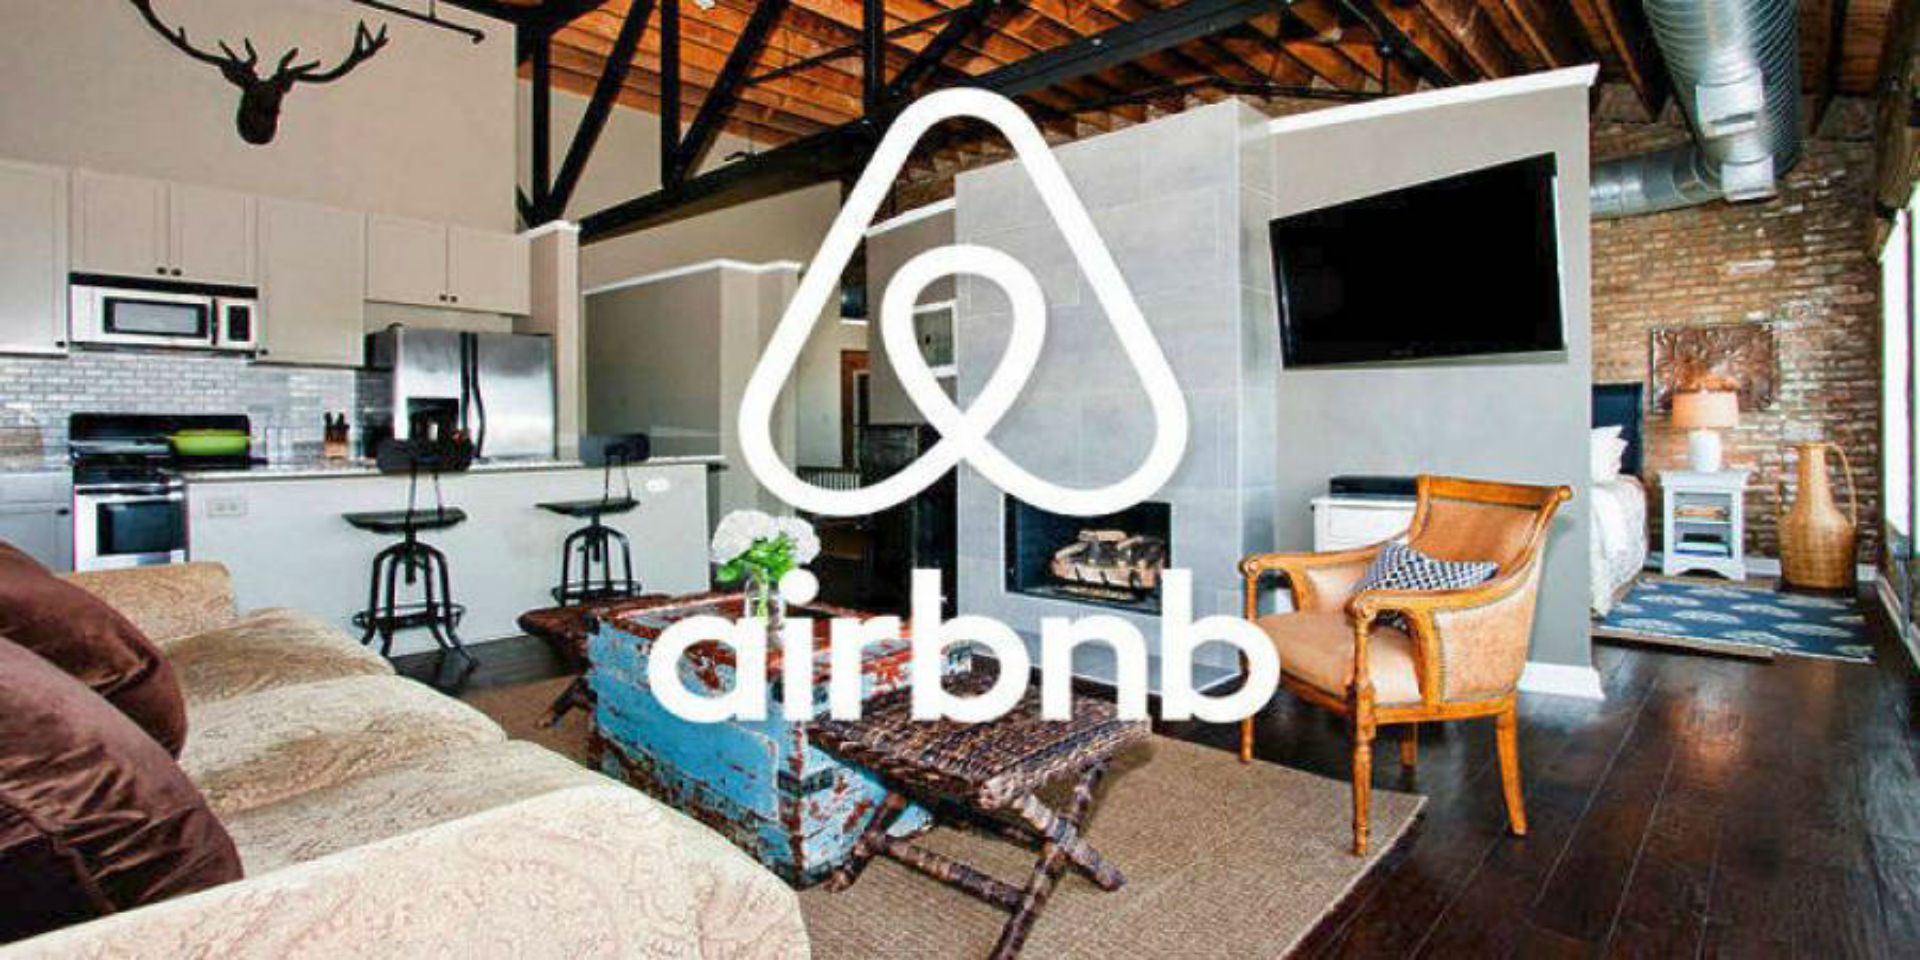 Airbnb's plans to design its own houses in 2019